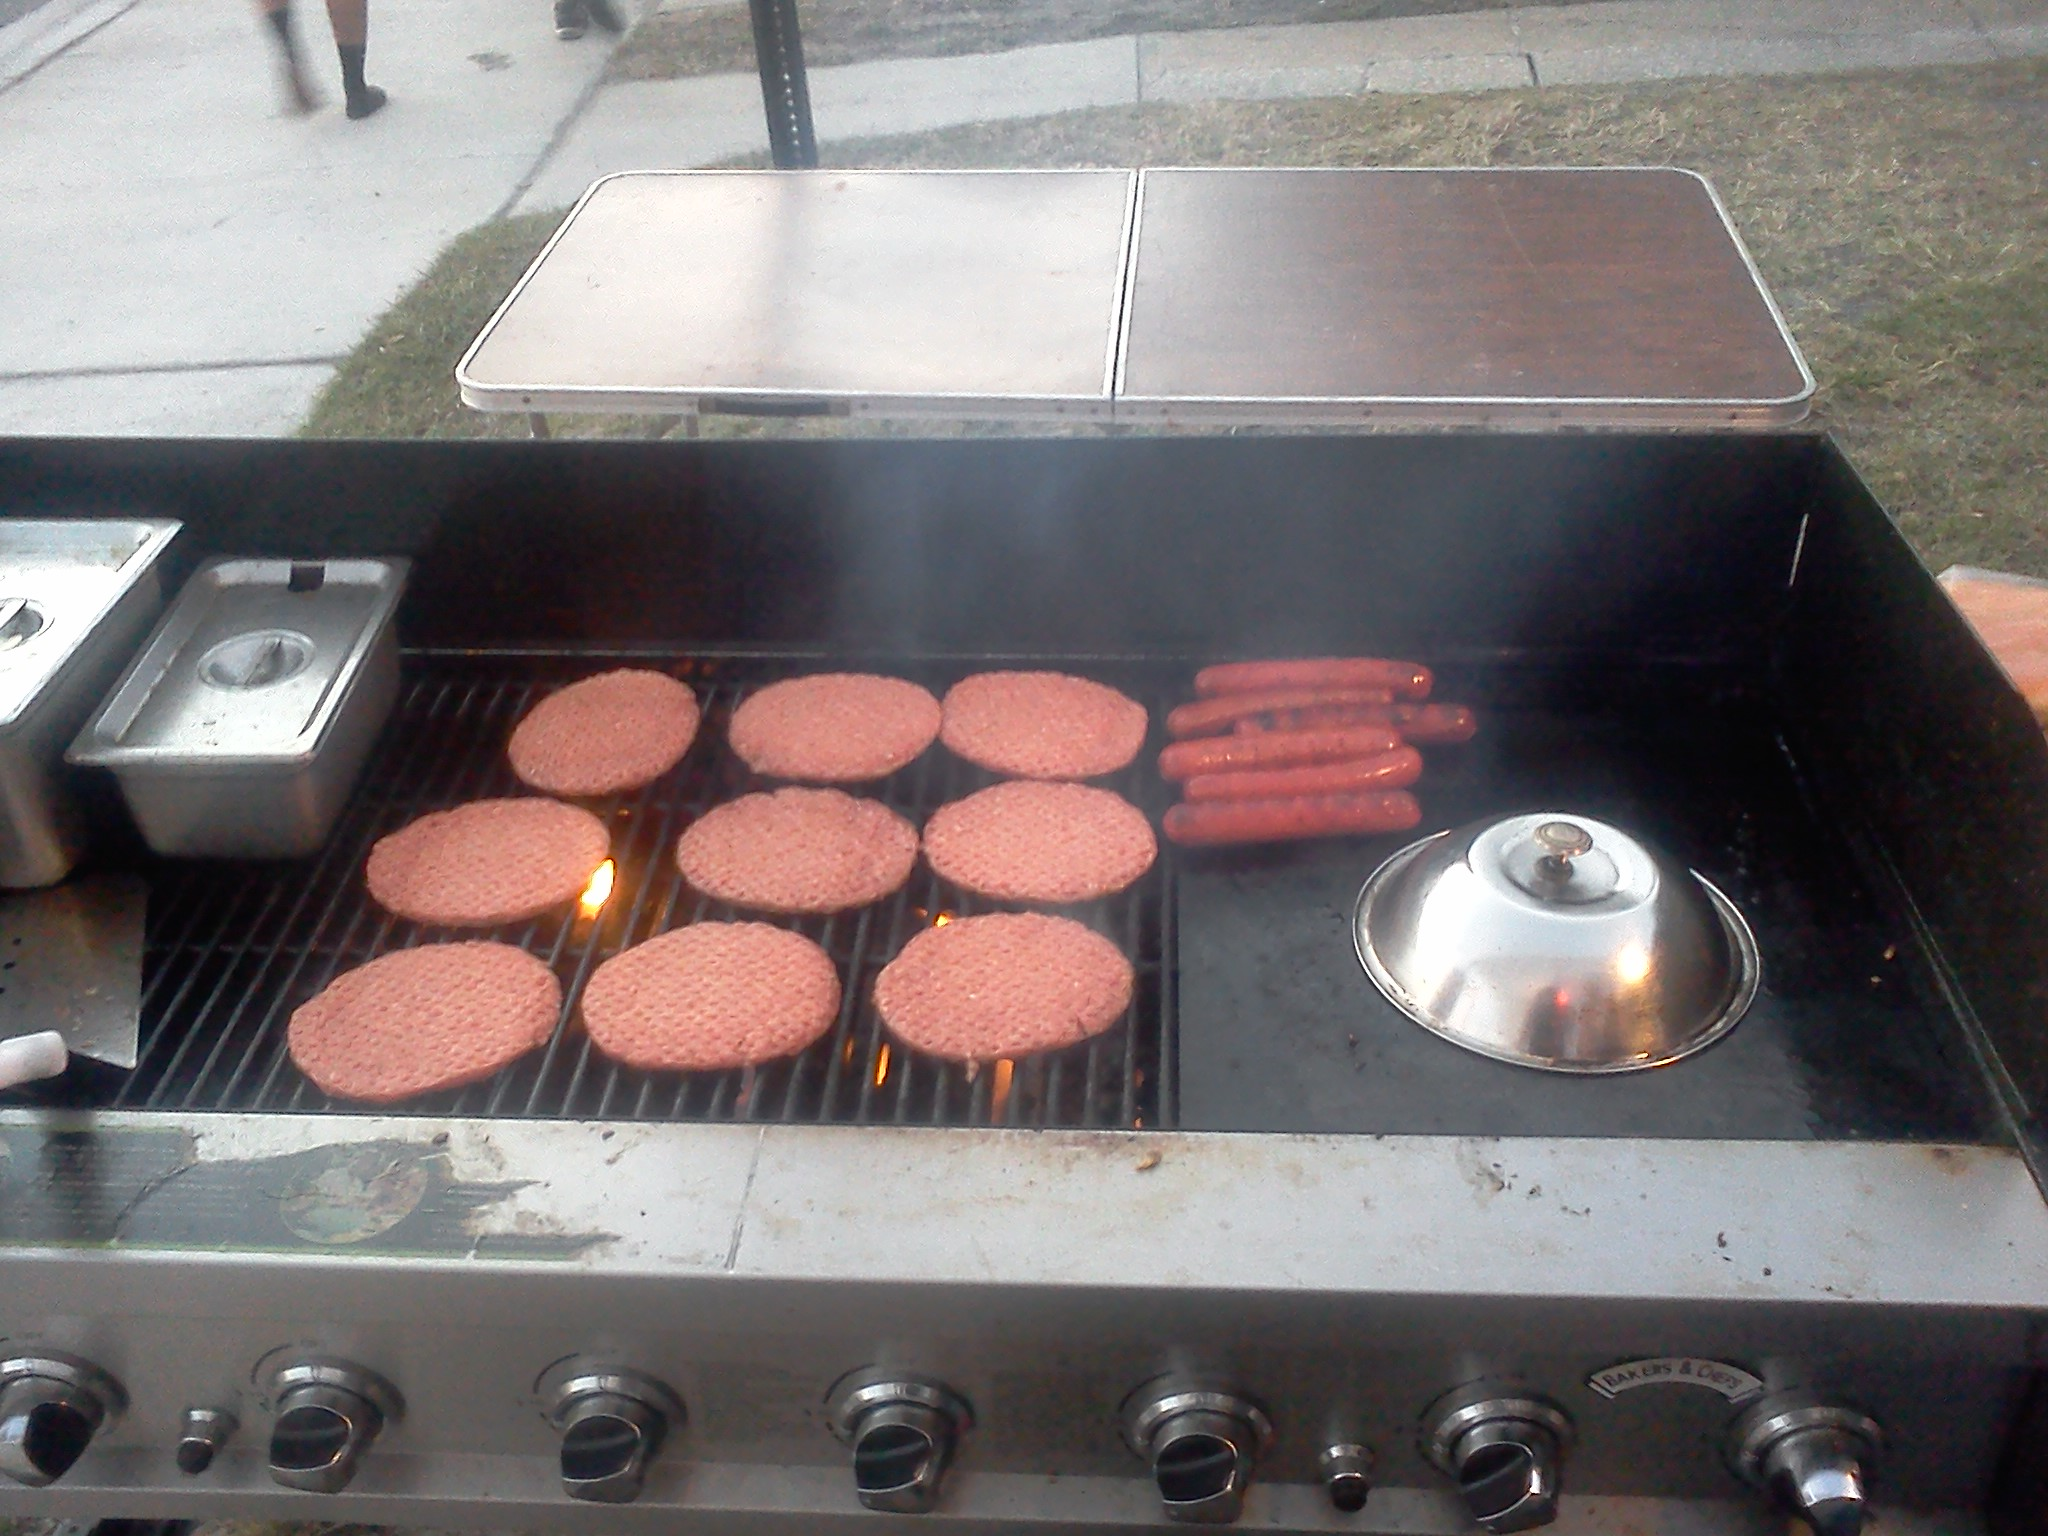 burgers & dogs on the grill